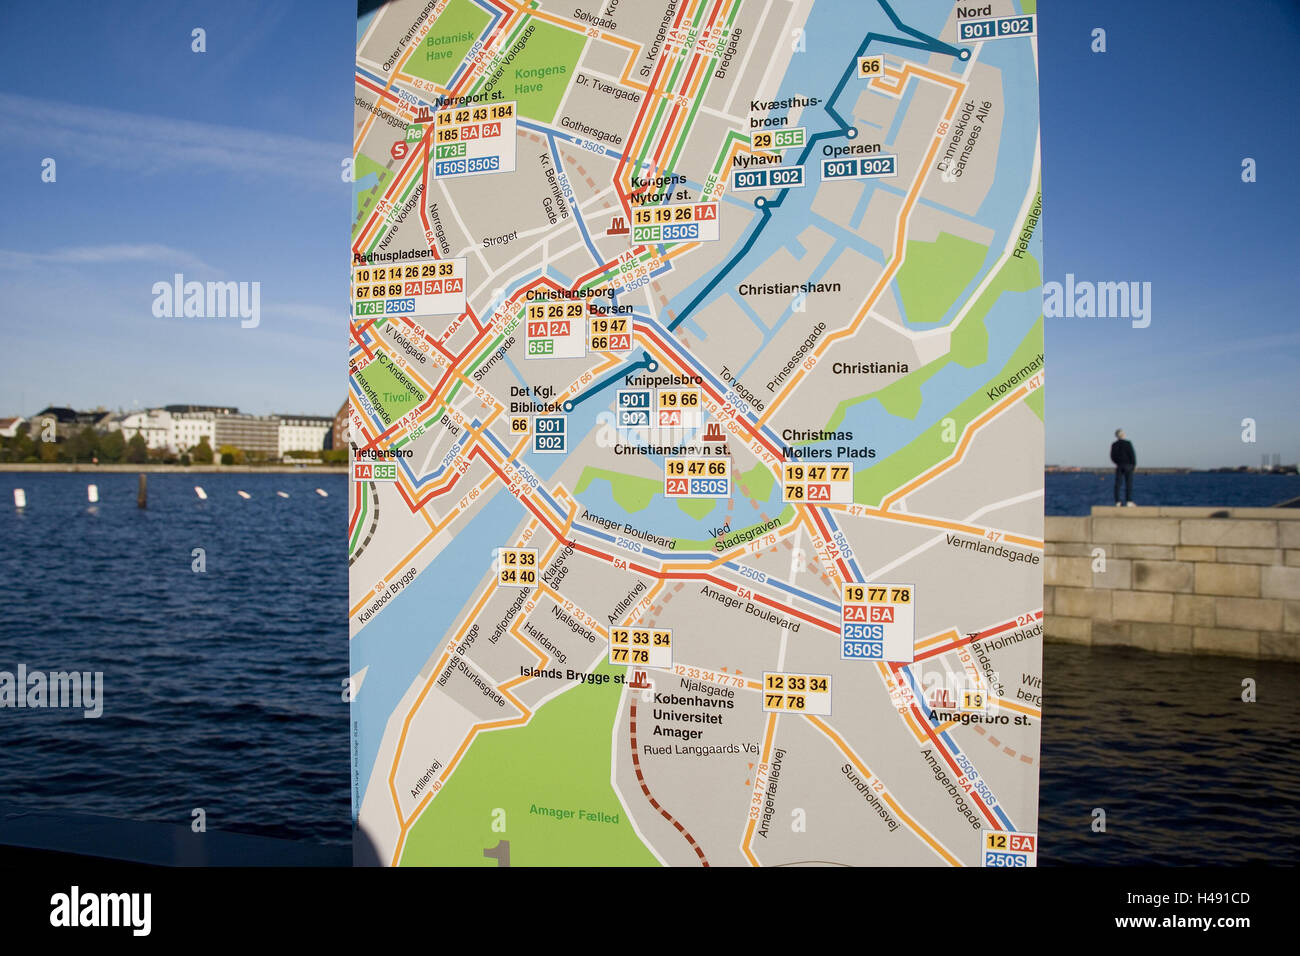 Denmark, Copenhagen, Sydhavnen, town view, city map, detail, capital, town, waters, road map, guidance, tourism, - Stock Image